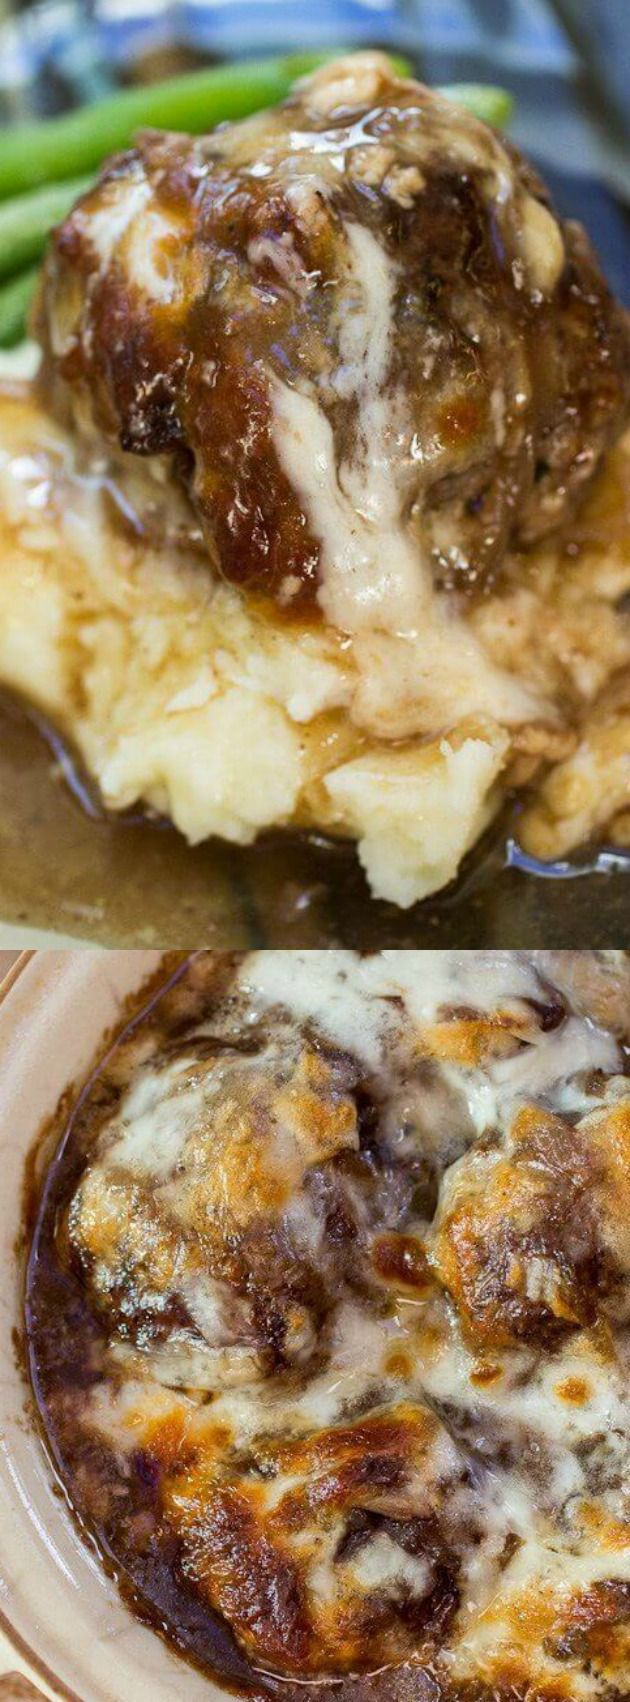 Food and Drink: French Onion Stuffed Meatballs - The Best Blog Rec...